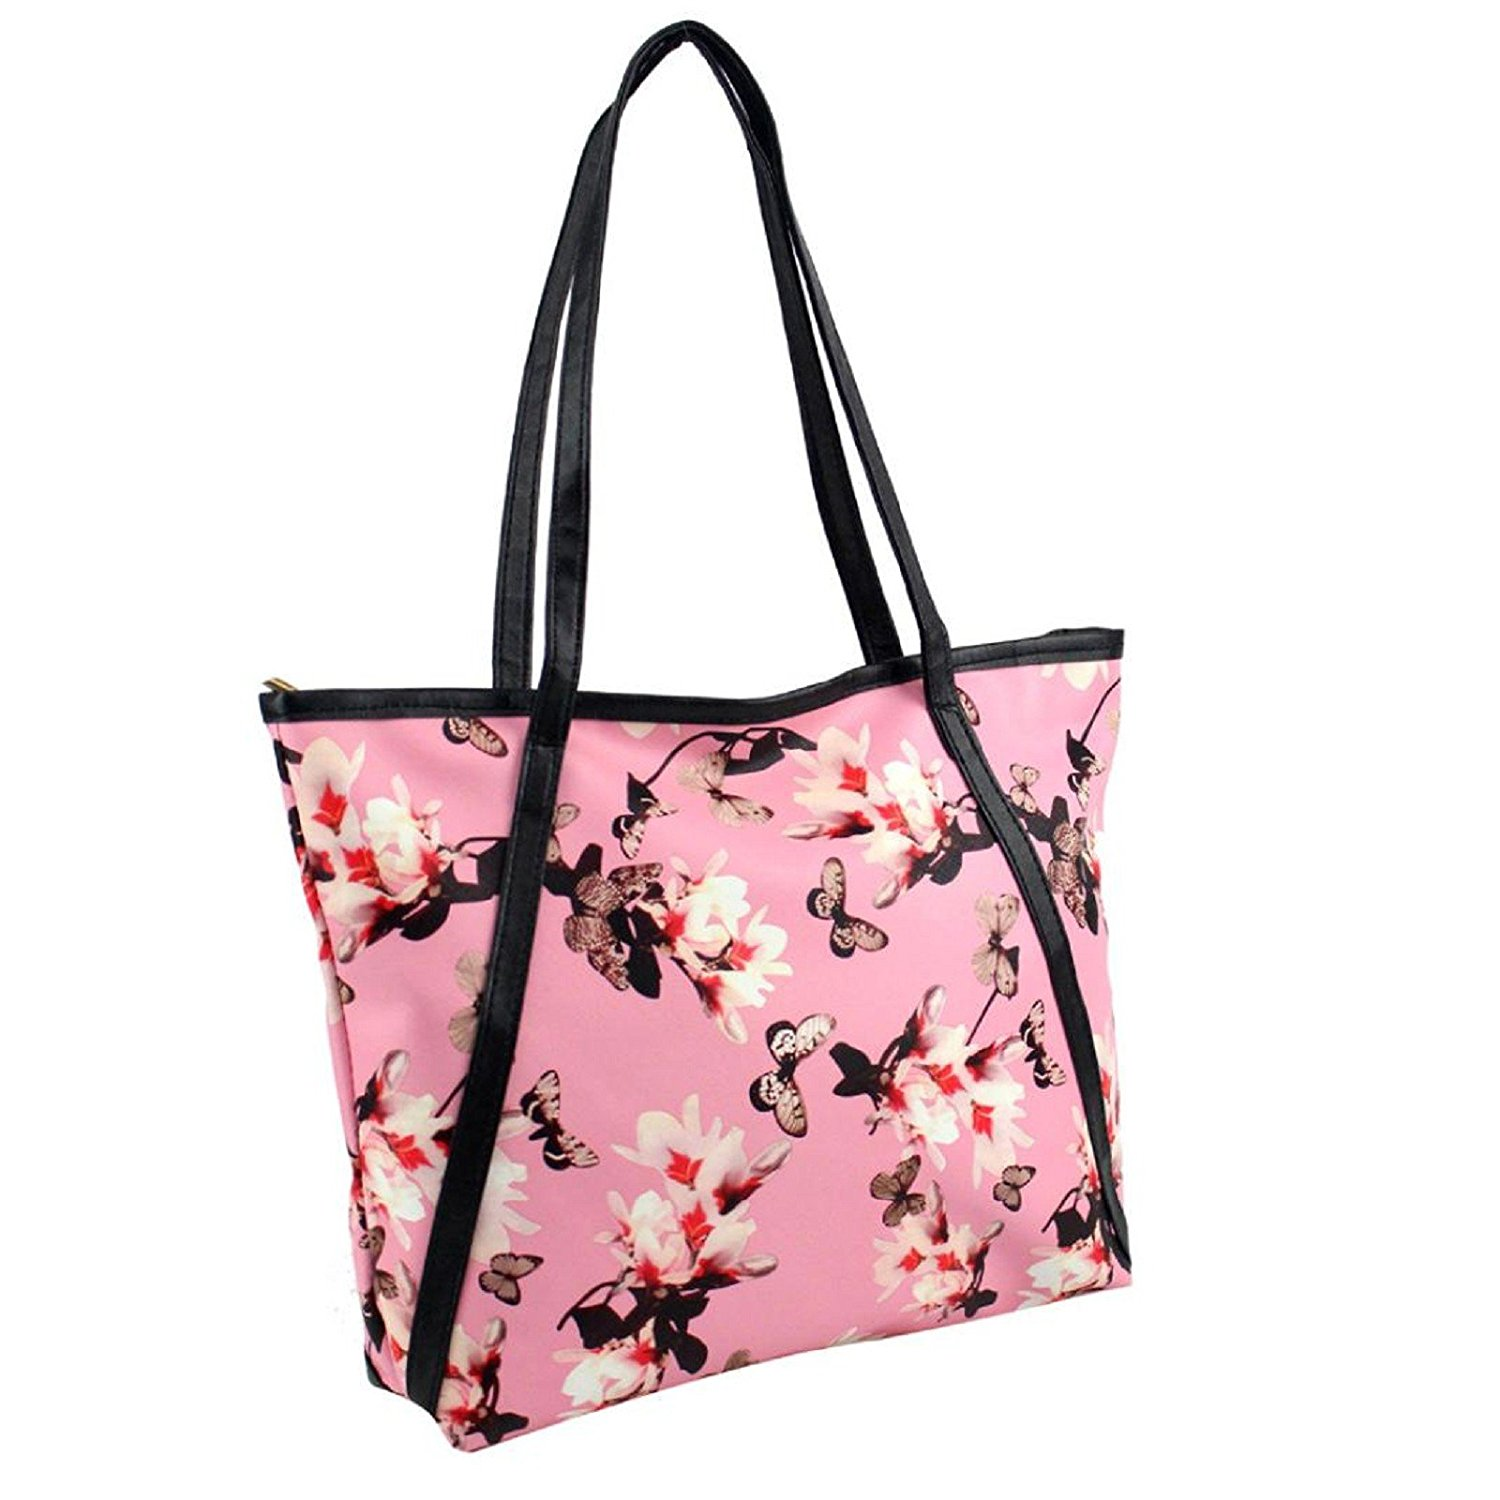 Owill Women Fashion Leather Bag Flower Butterfly Pictures Durable Handbag